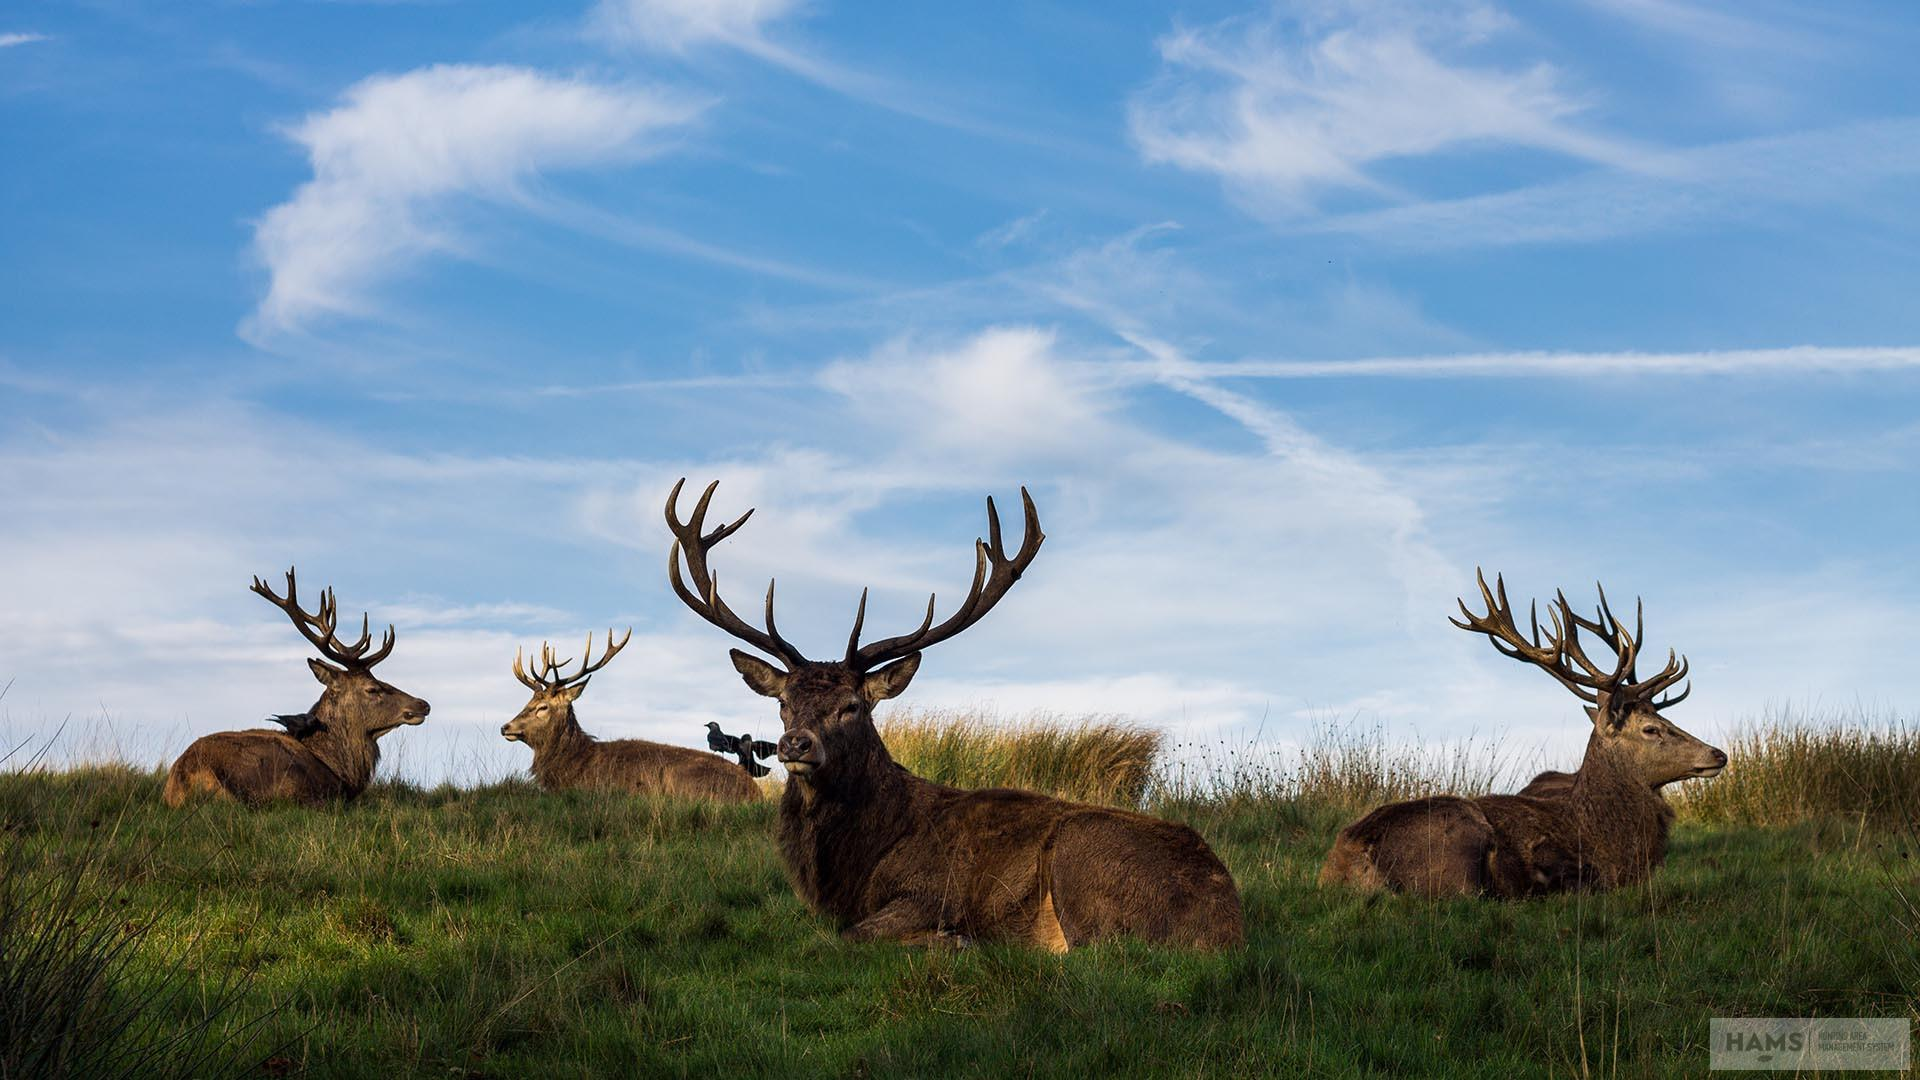 Want better antlers, more meat and higher quality populations?